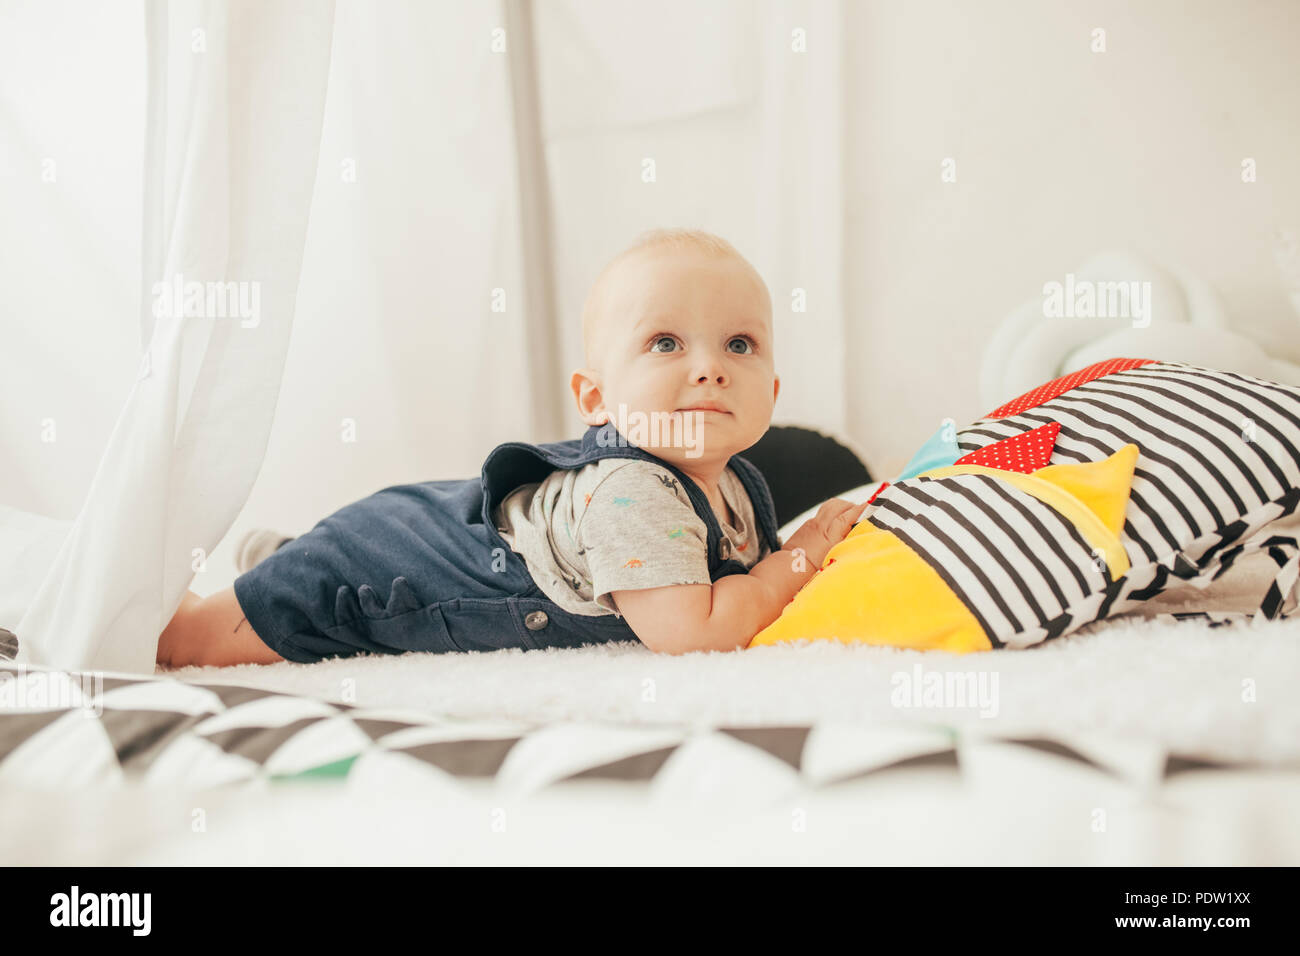 Toddler in rompers and t-shirt lies on bed next to colorful pillows. - Stock Image